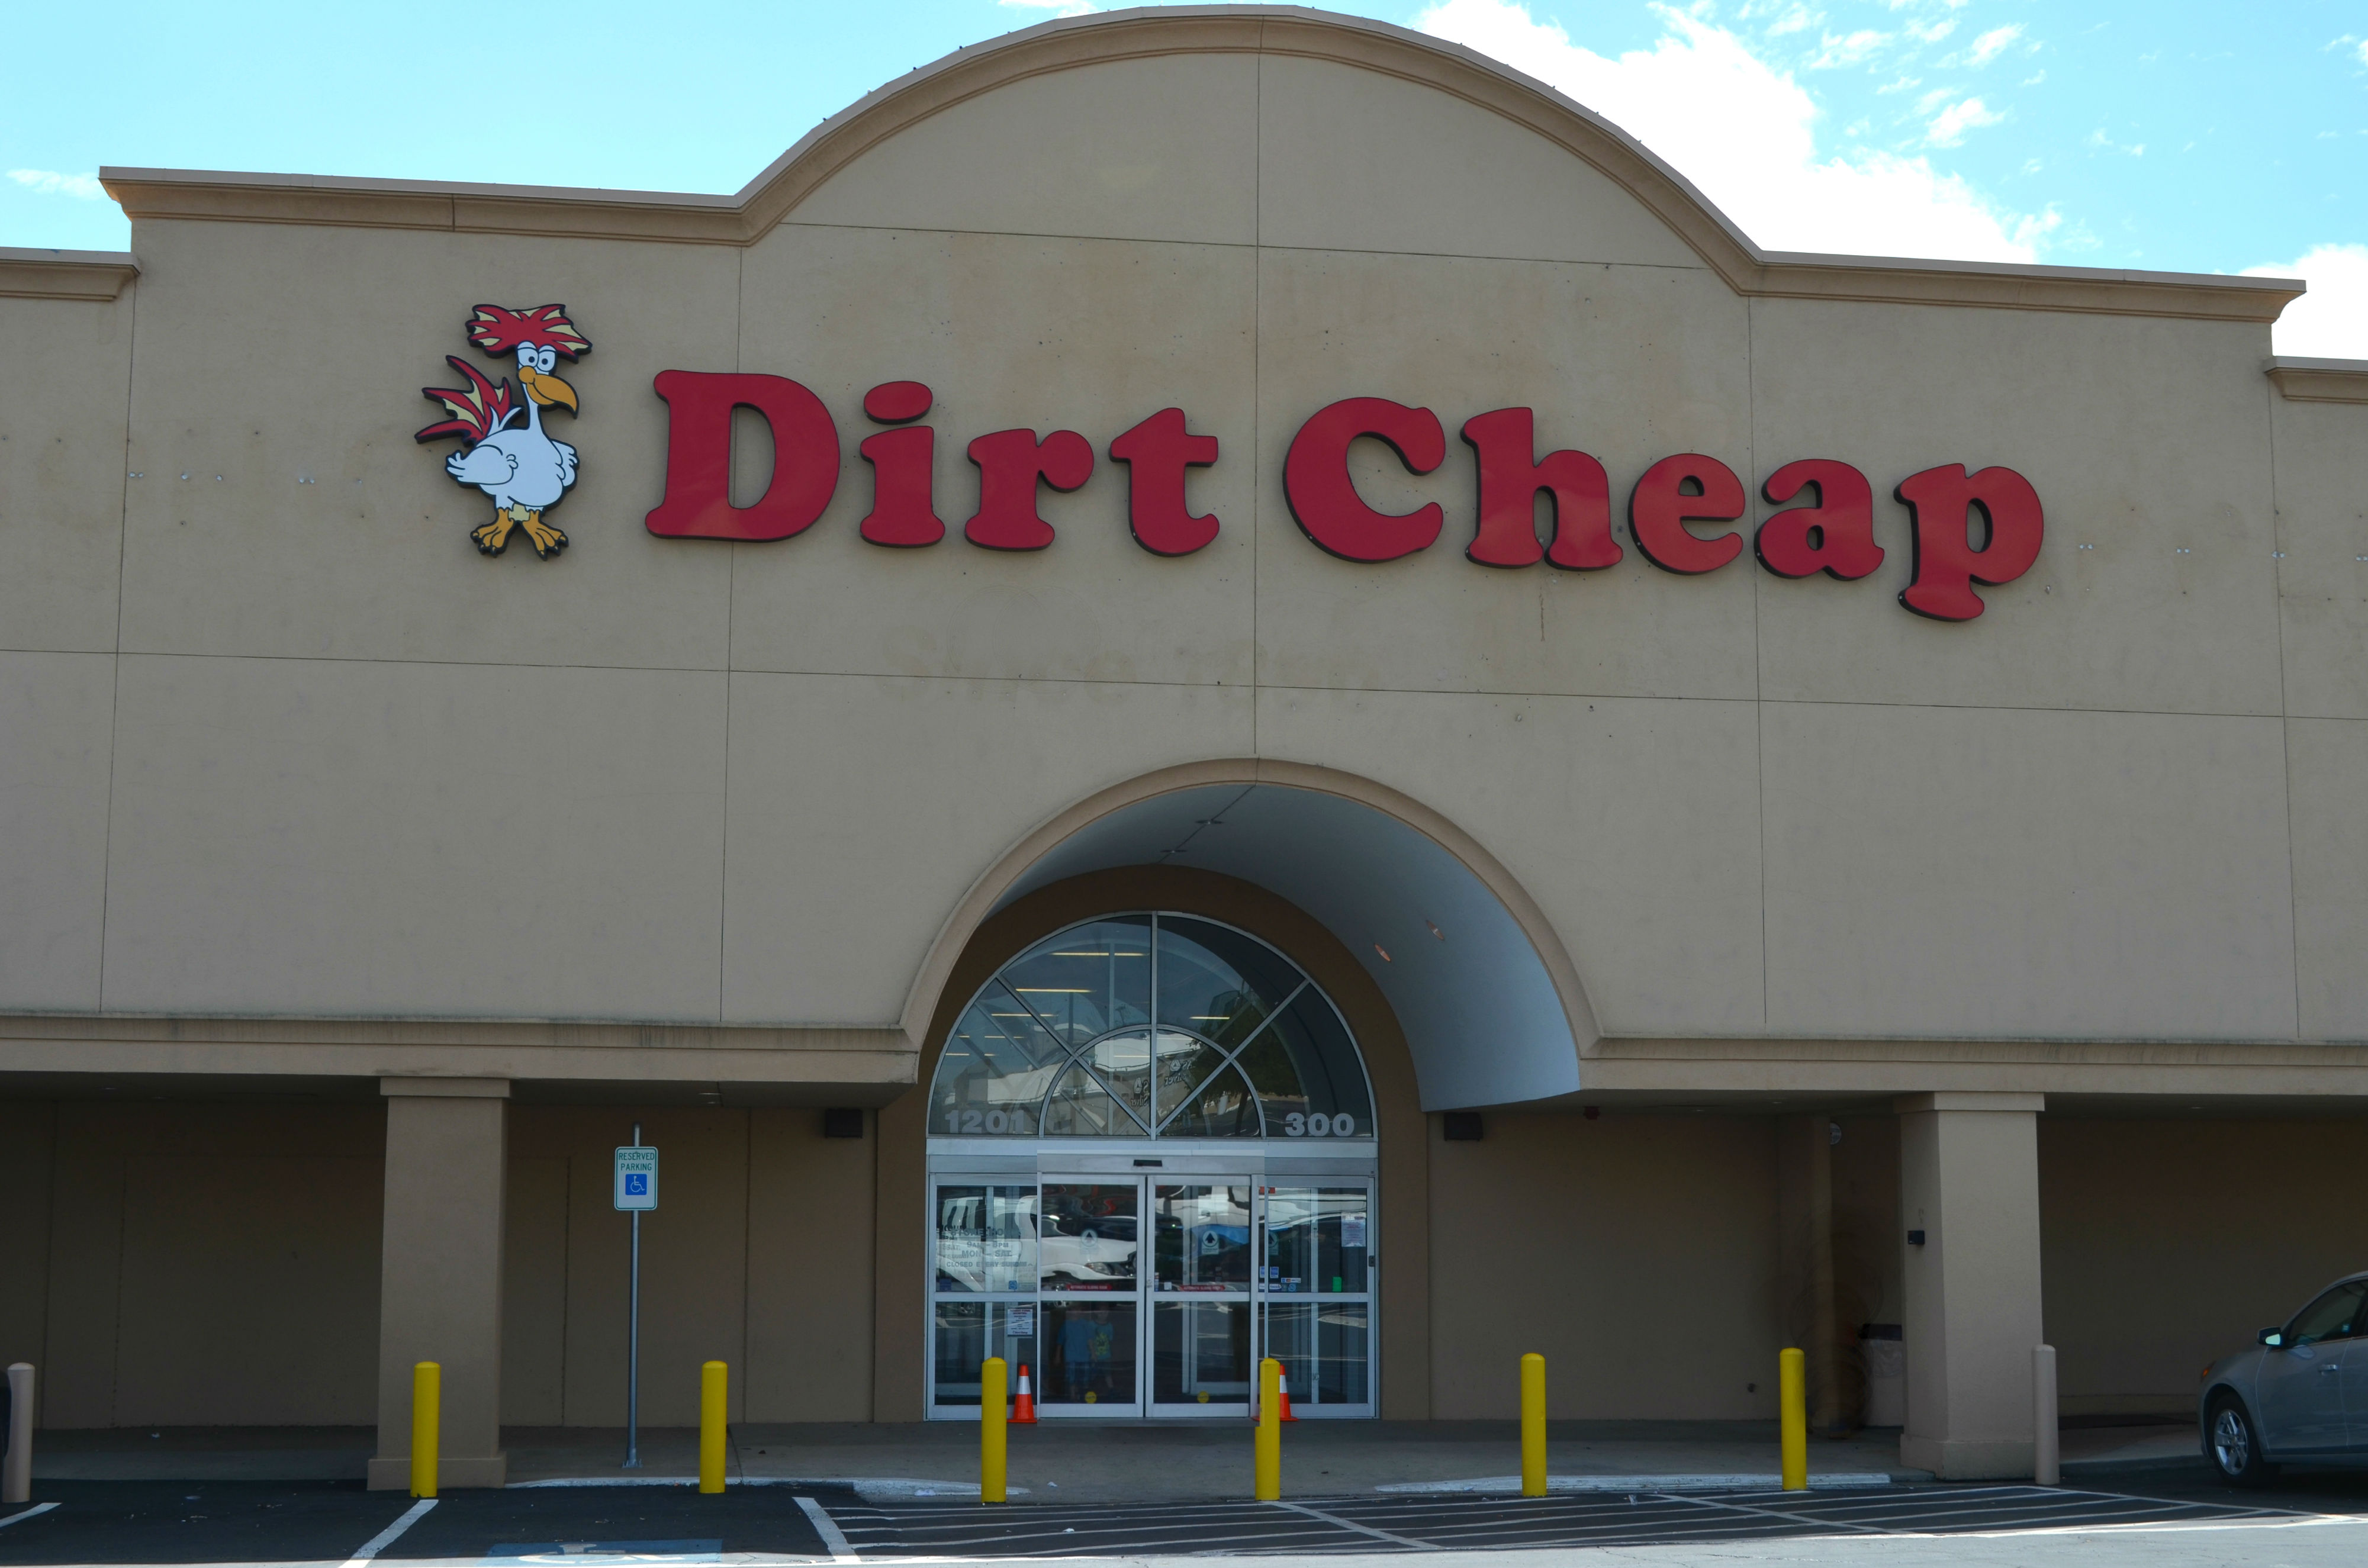 Euless Dirt Cheap